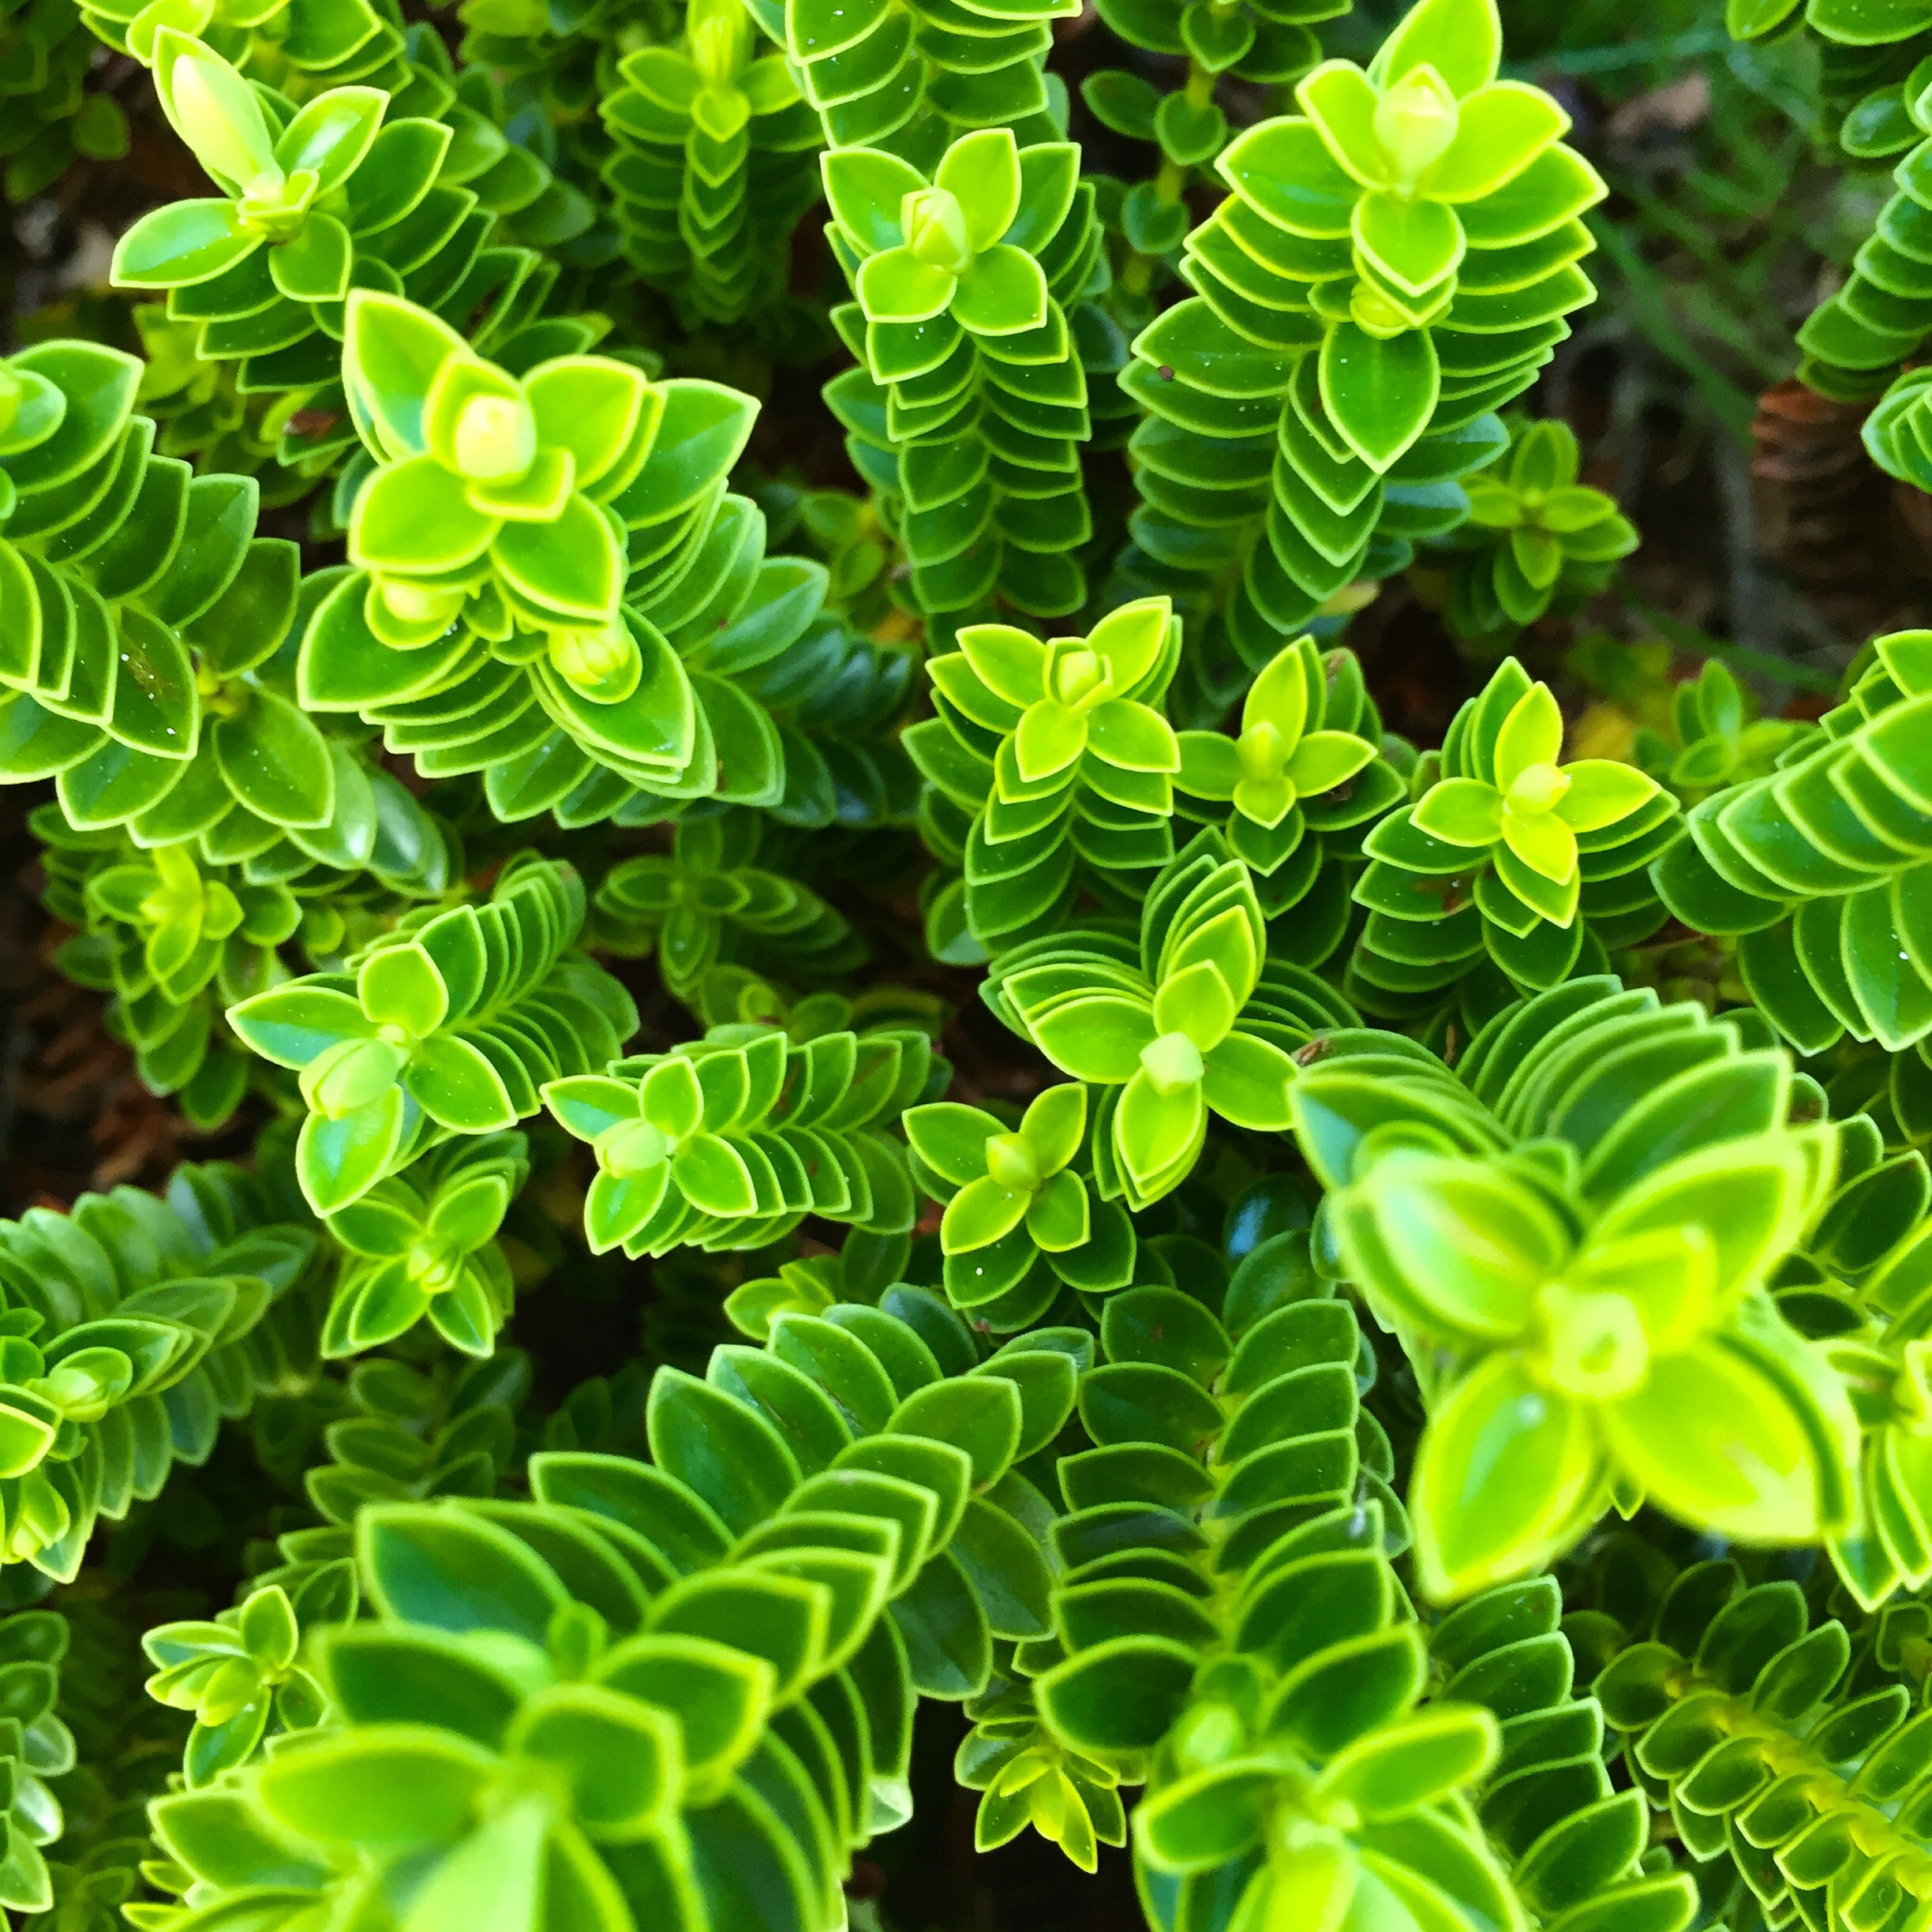 An overhead shot of tall green plants with regular leaves